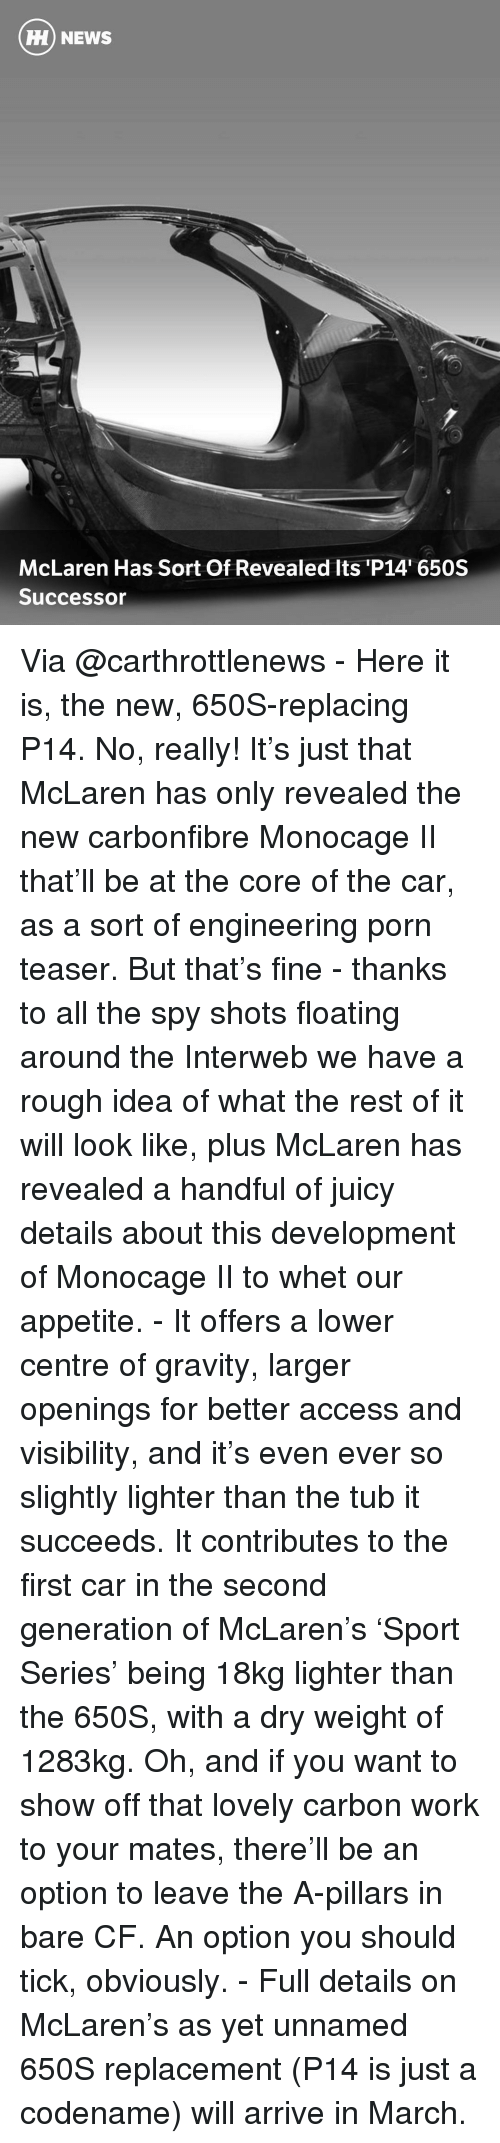 Memes, Sports, and Juicy: HH NEWS  McLaren Has Sort Of Revealed Its P14 650S  Successor Via @carthrottlenews - Here it is, the new, 650S-replacing P14. No, really! It's just that McLaren has only revealed the new carbonfibre Monocage II that'll be at the core of the car, as a sort of engineering porn teaser. But that's fine - thanks to all the spy shots floating around the Interweb we have a rough idea of what the rest of it will look like, plus McLaren has revealed a handful of juicy details about this development of Monocage II to whet our appetite. - It offers a lower centre of gravity, larger openings for better access and visibility, and it's even ever so slightly lighter than the tub it succeeds. It contributes to the first car in the second generation of McLaren's 'Sport Series' being 18kg lighter than the 650S, with a dry weight of 1283kg. Oh, and if you want to show off that lovely carbon work to your mates, there'll be an option to leave the A-pillars in bare CF. An option you should tick, obviously. - Full details on McLaren's as yet unnamed 650S replacement (P14 is just a codename) will arrive in March.